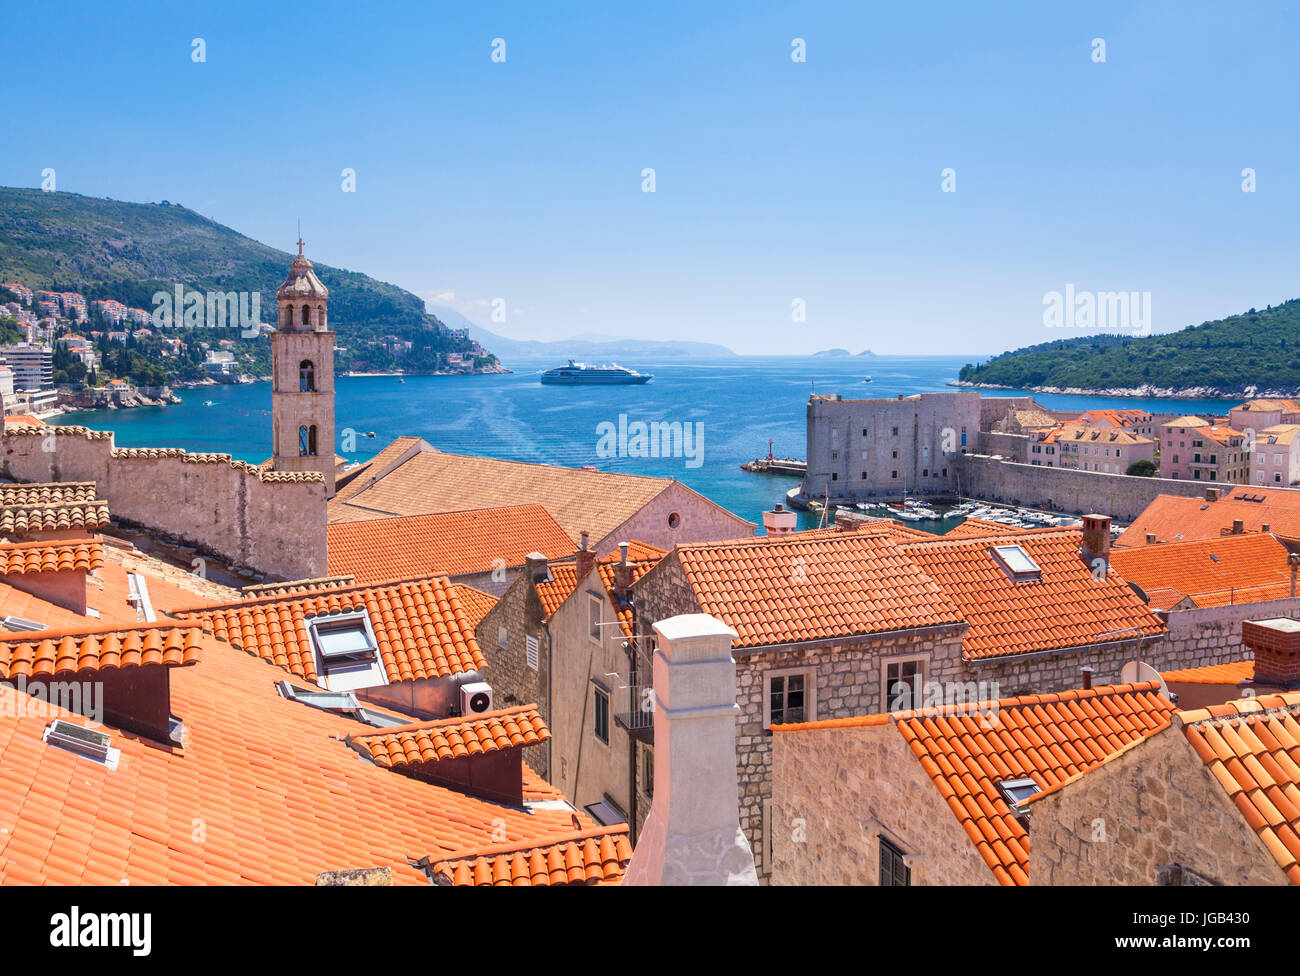 Croatia Dubrovnik Croatia Dalmatian coast view from city walls of the bell tower red tiles rooftops old town dubrovnik - Stock Image